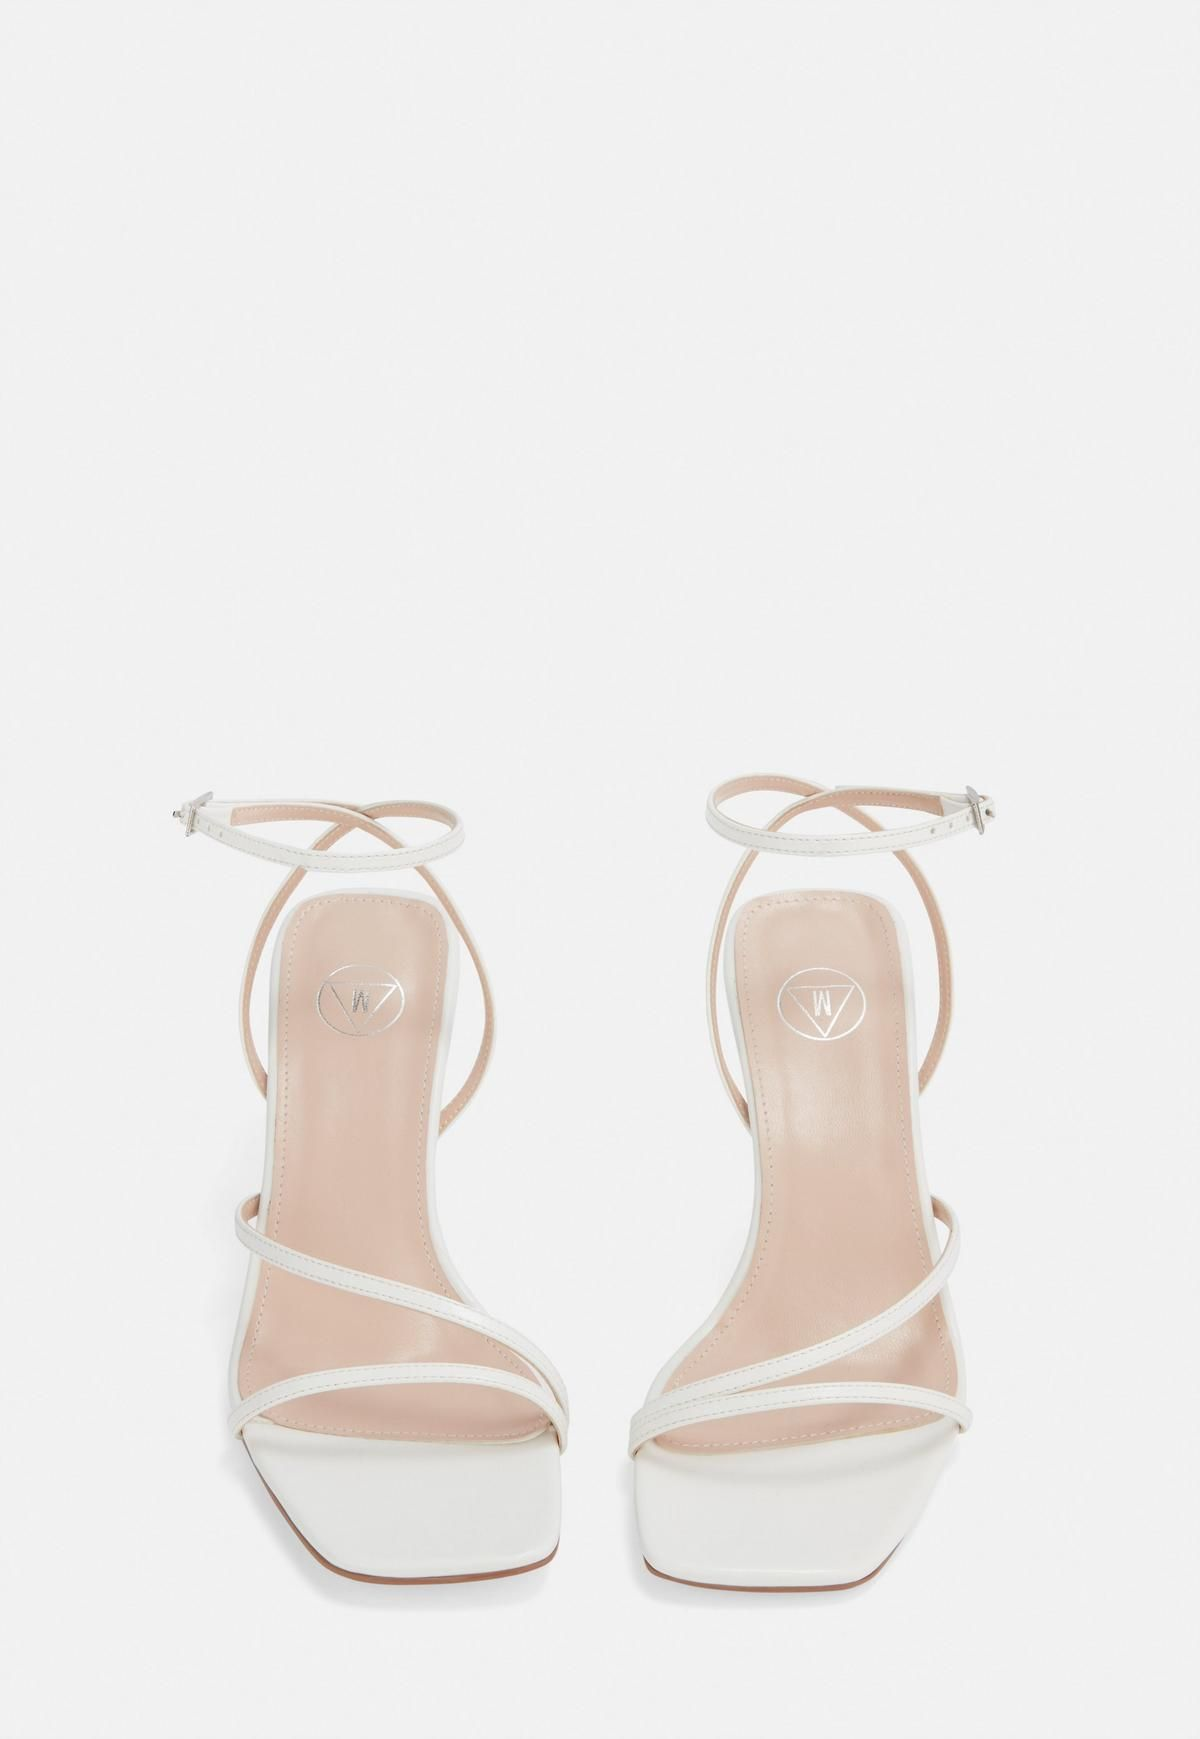 White Strappy Low Heeled Sandals